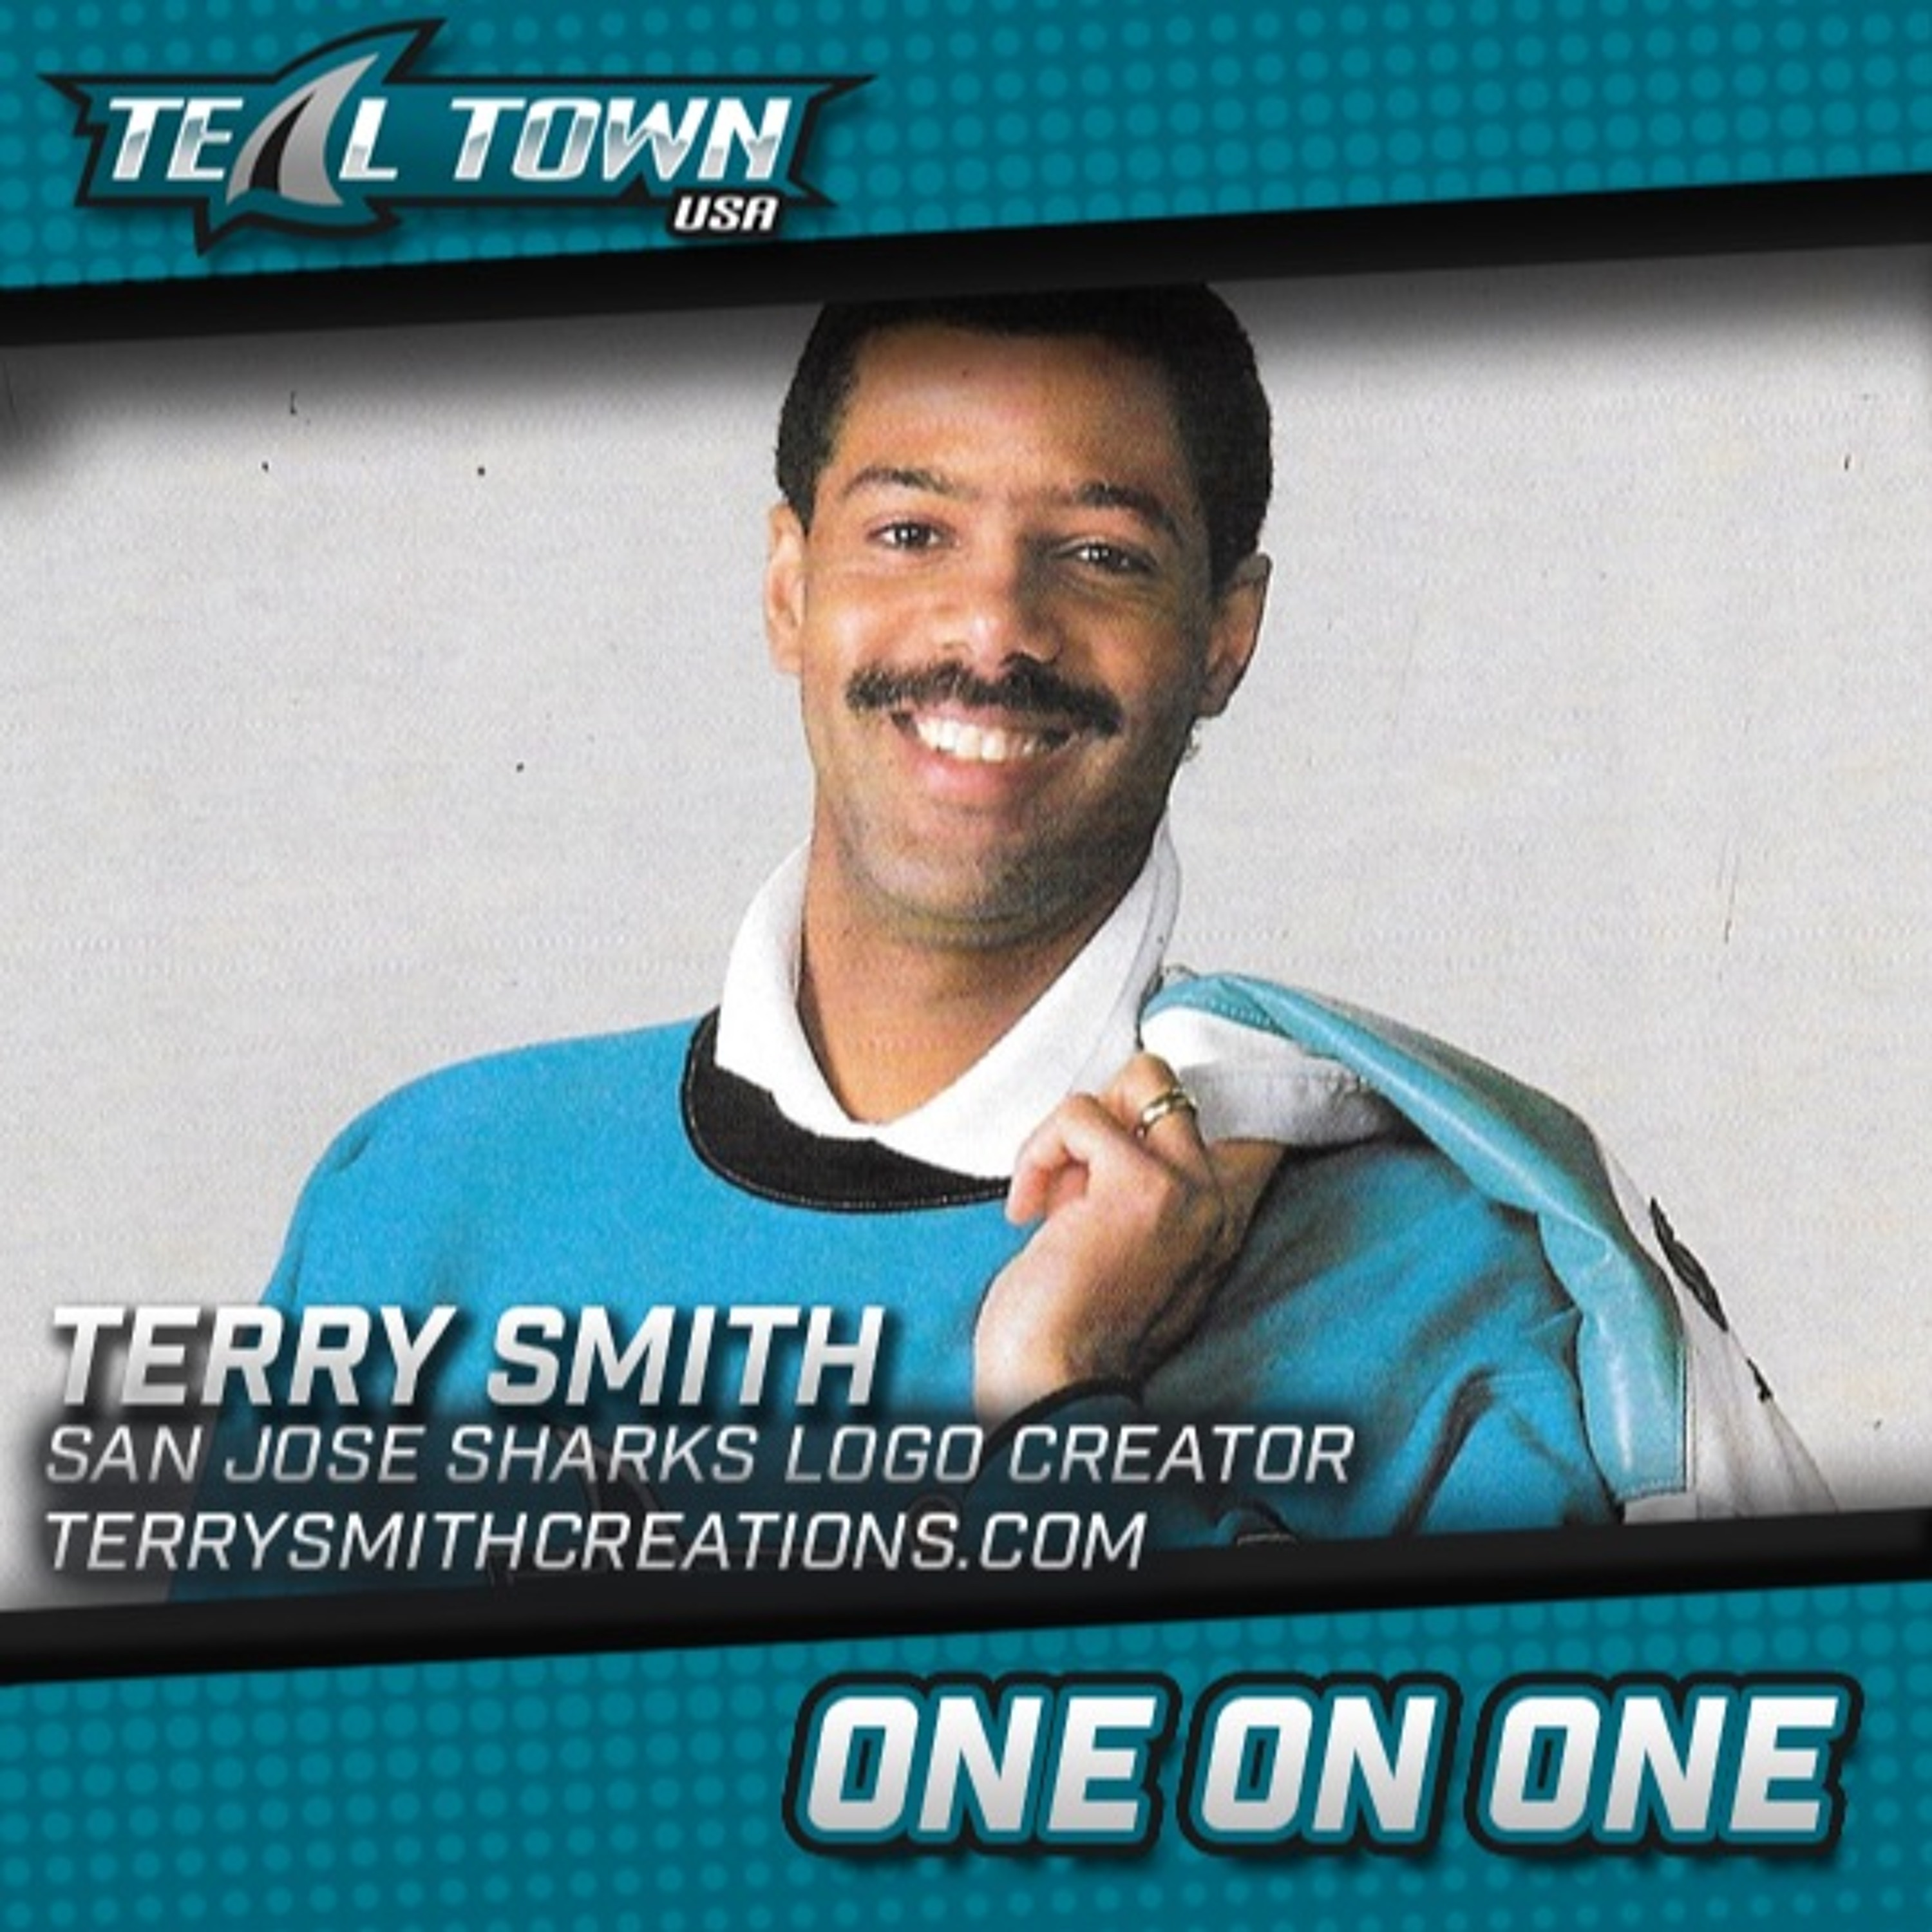 One on One with Terry Smith - San Jose Sharks Logo Creator